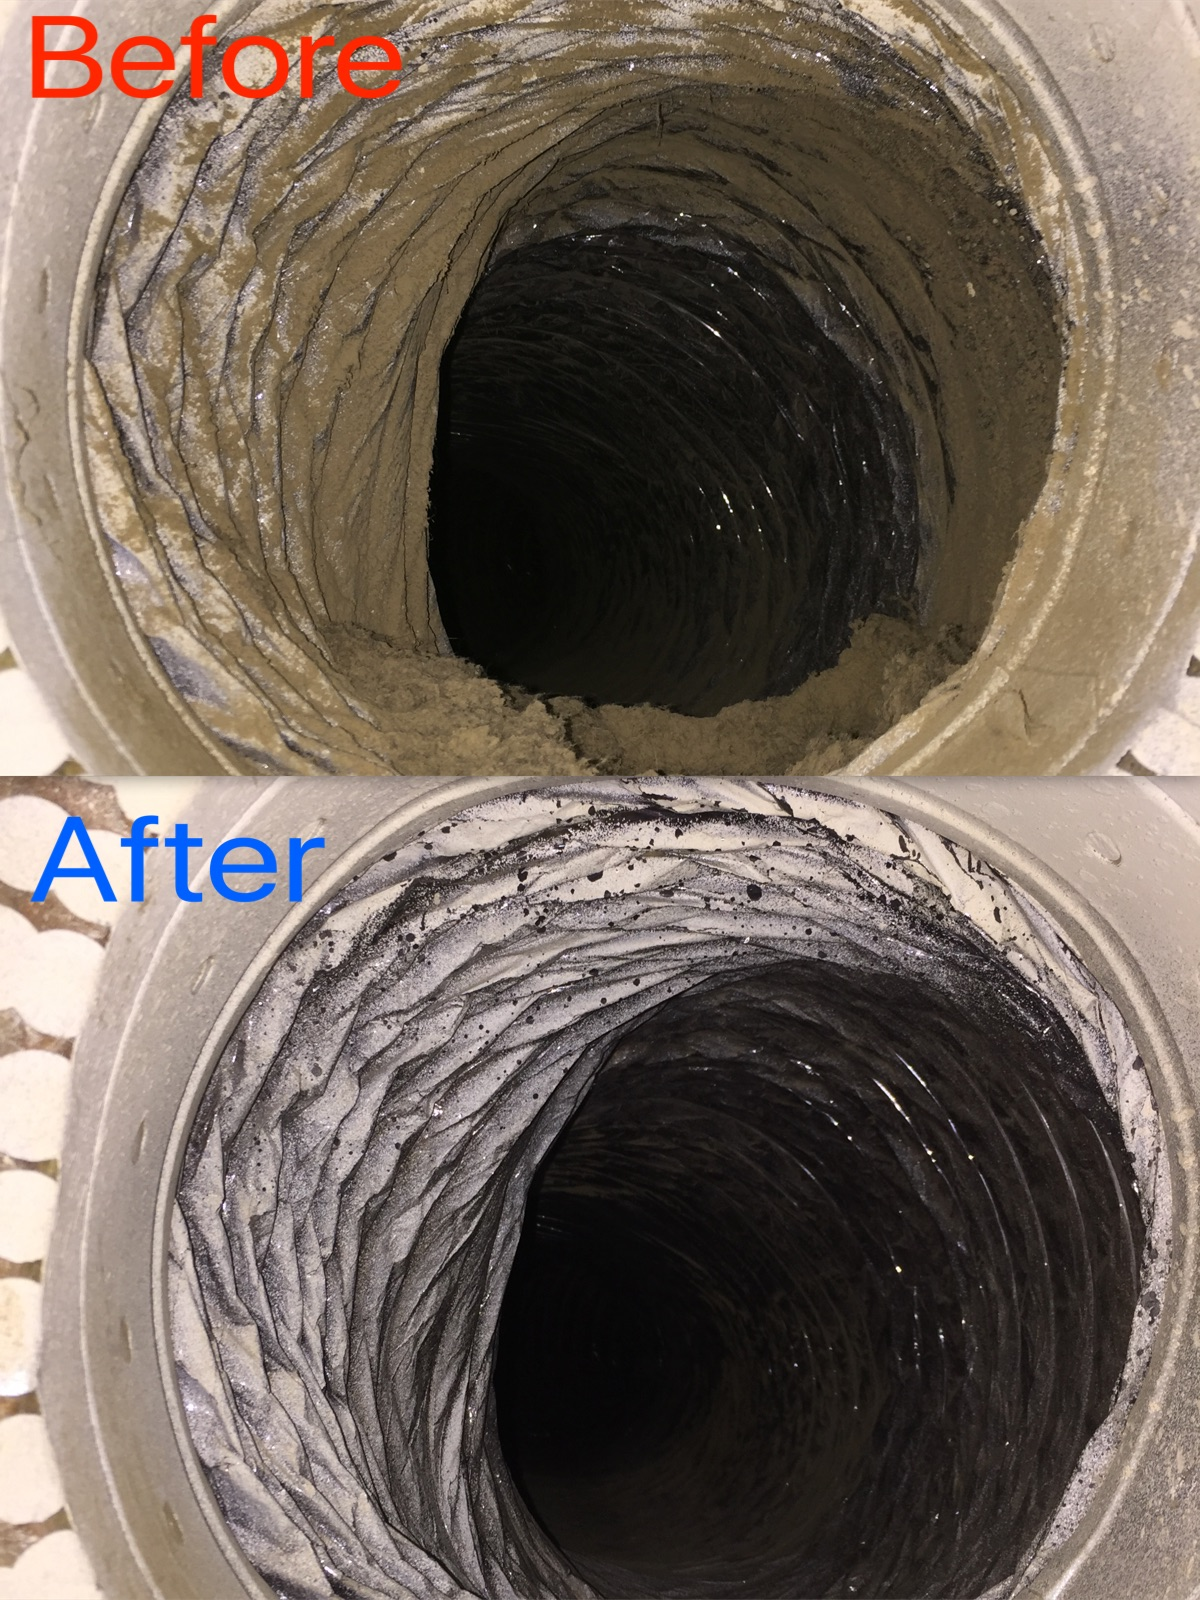 Return Flex Duct Before & After